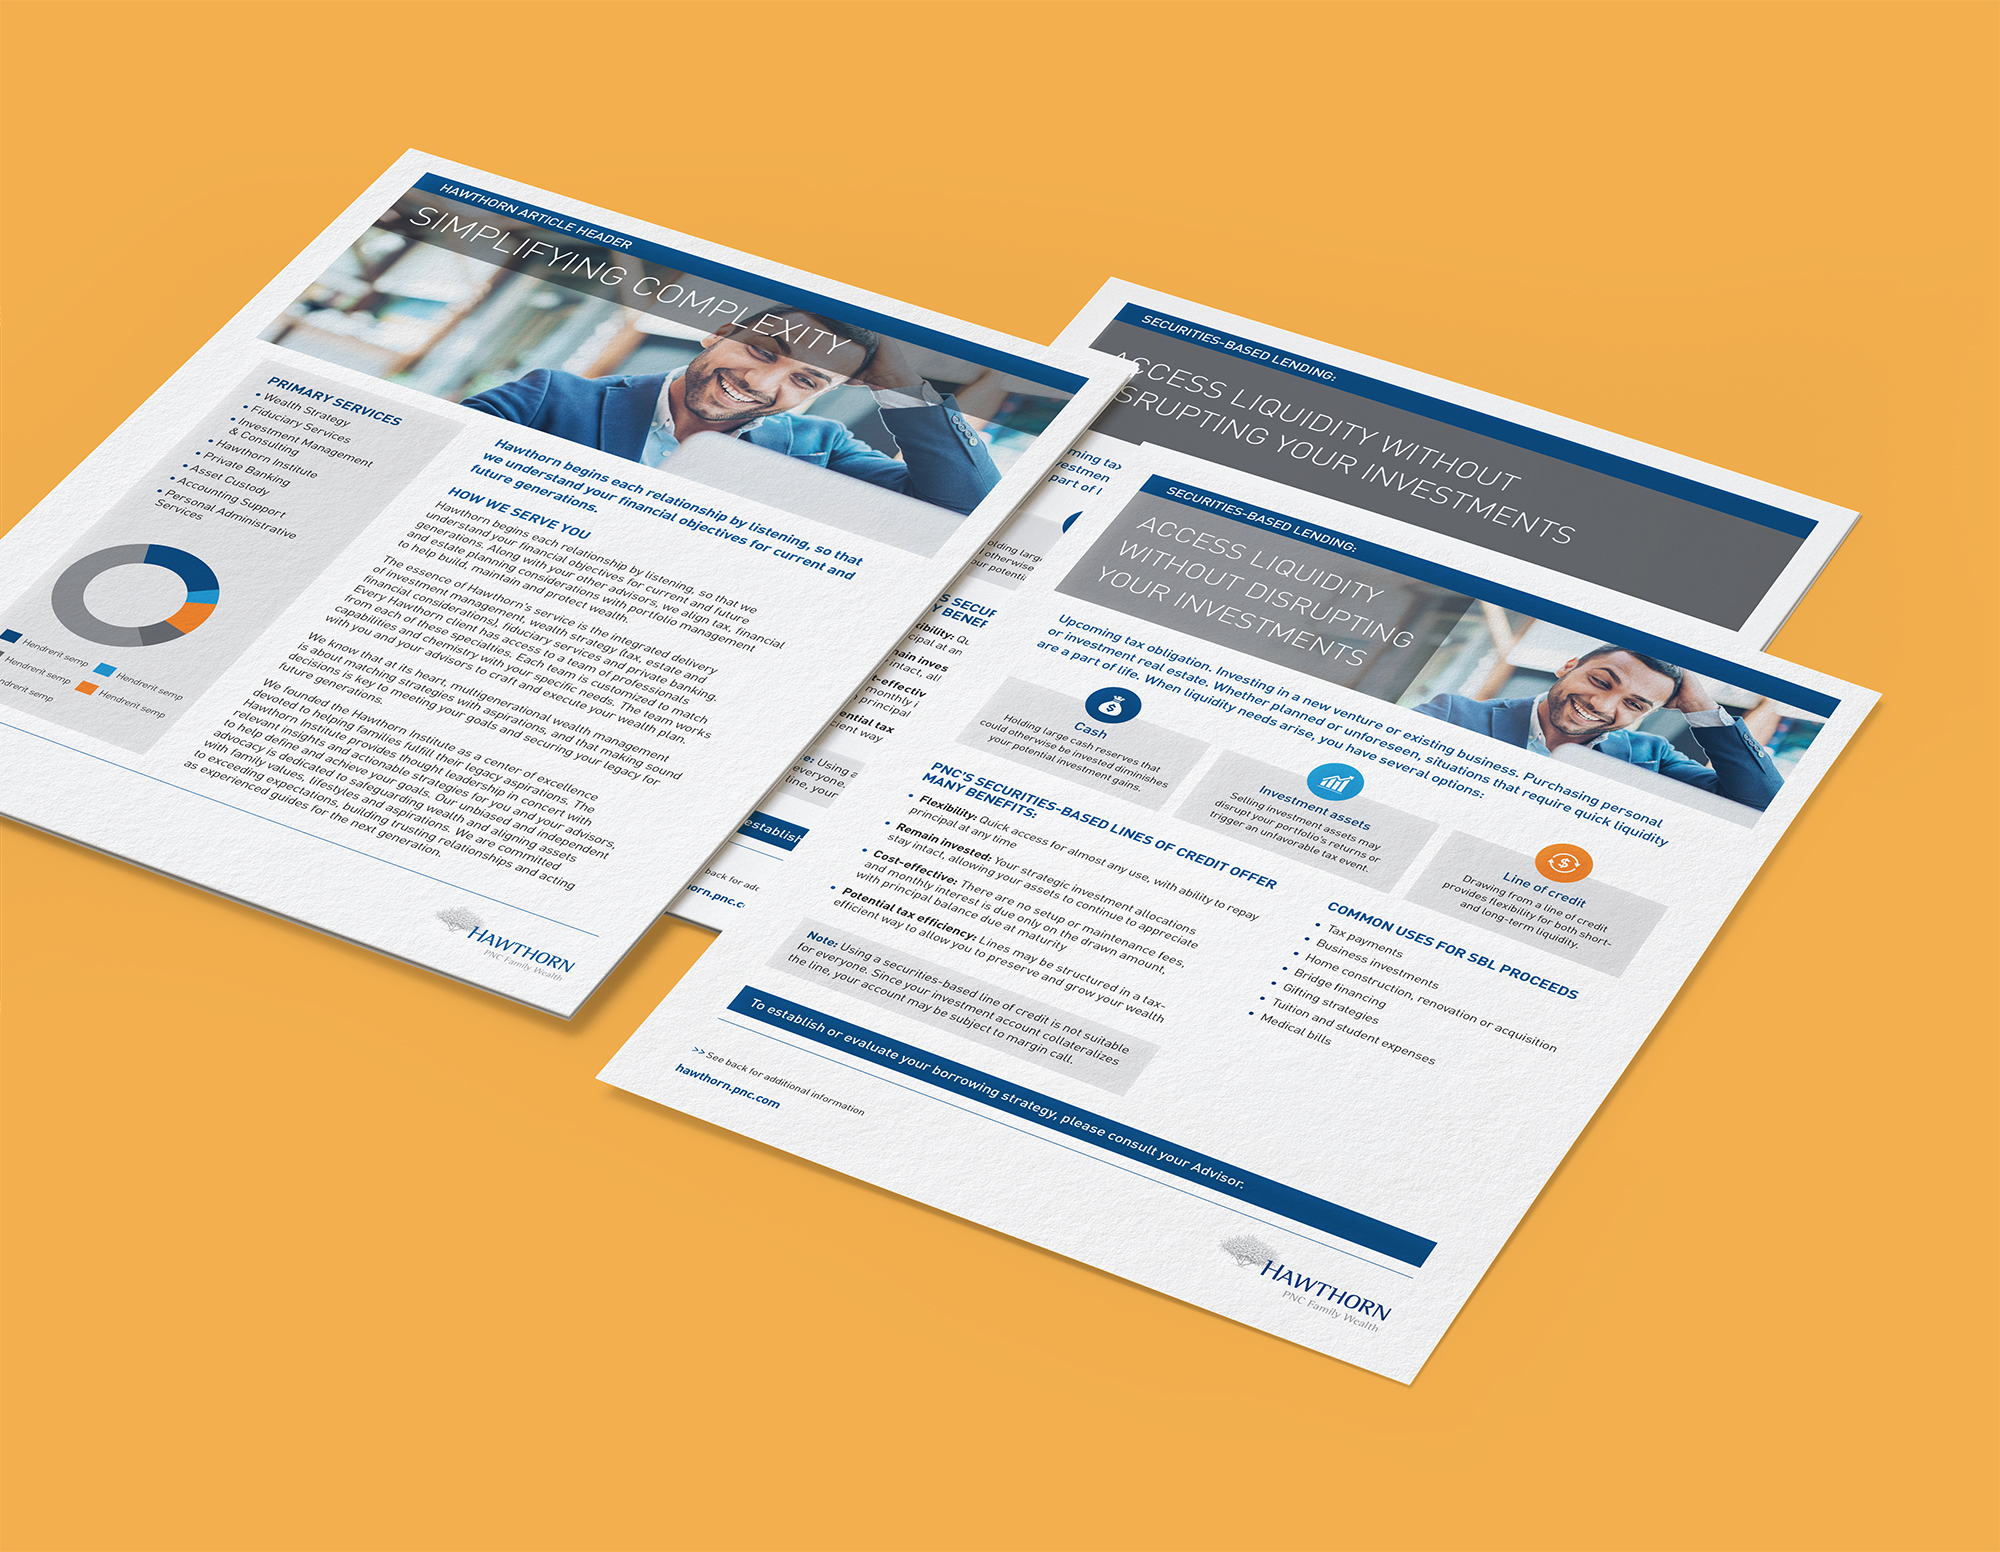 Mockups of three fact sheet/article layouts over a mustard background. Each features Hawthorn's dark gray, light gray, and dark blue color palette, with a header consisting of a gray background and full-color business imagery.